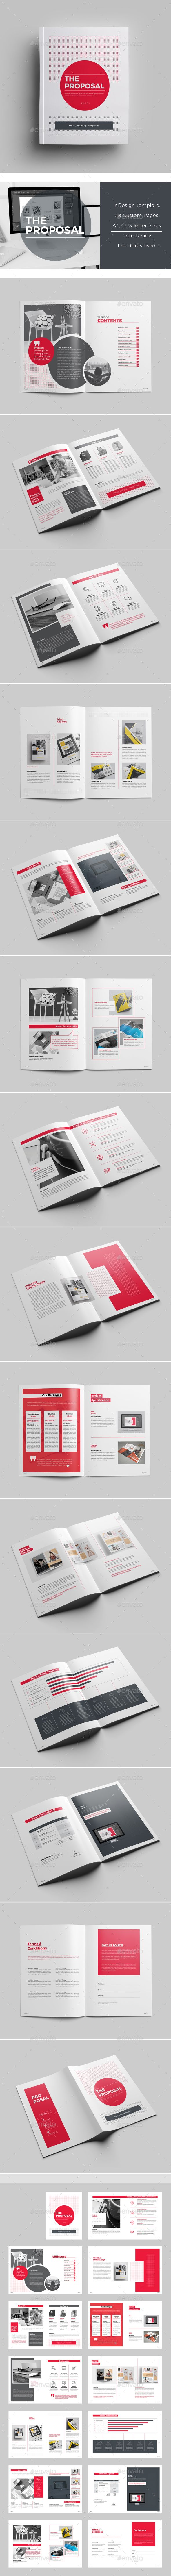 Proposal proposal templates adobe indesign and proposals clean professional proposal template for adobe indesign it comes in international a4 us letter saigontimesfo